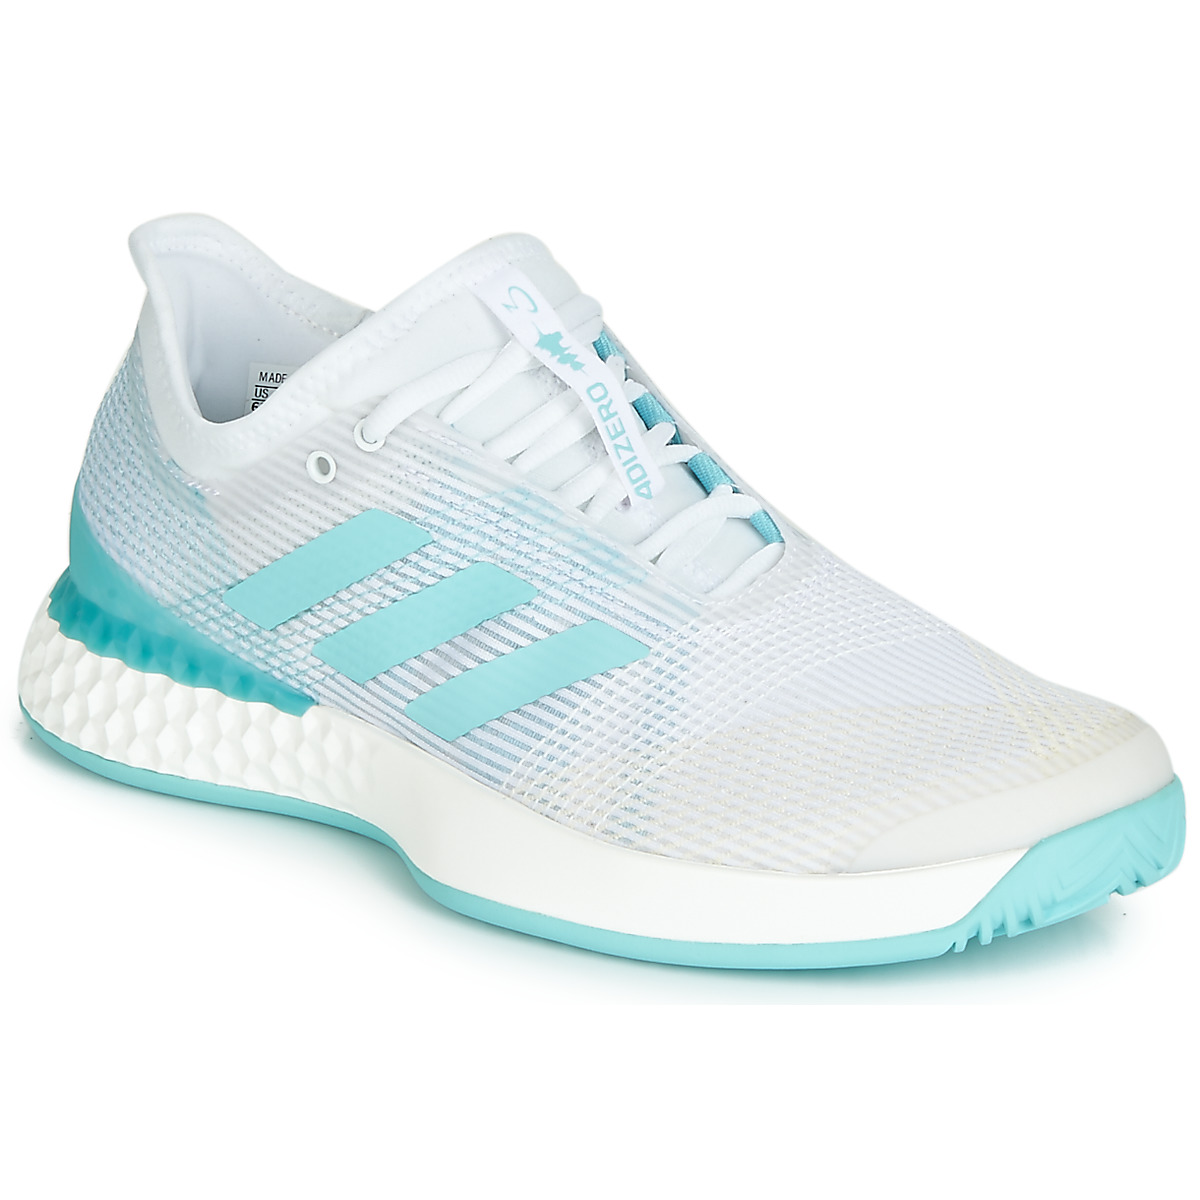 equipaje Perversión Muñeco de peluche  adidas Performance ADIZERO UBERSONIC 3M X PARLEY White / Blue - Fast  delivery | Spartoo Europe ! - Shoes Running-shoes Women 111,96 €